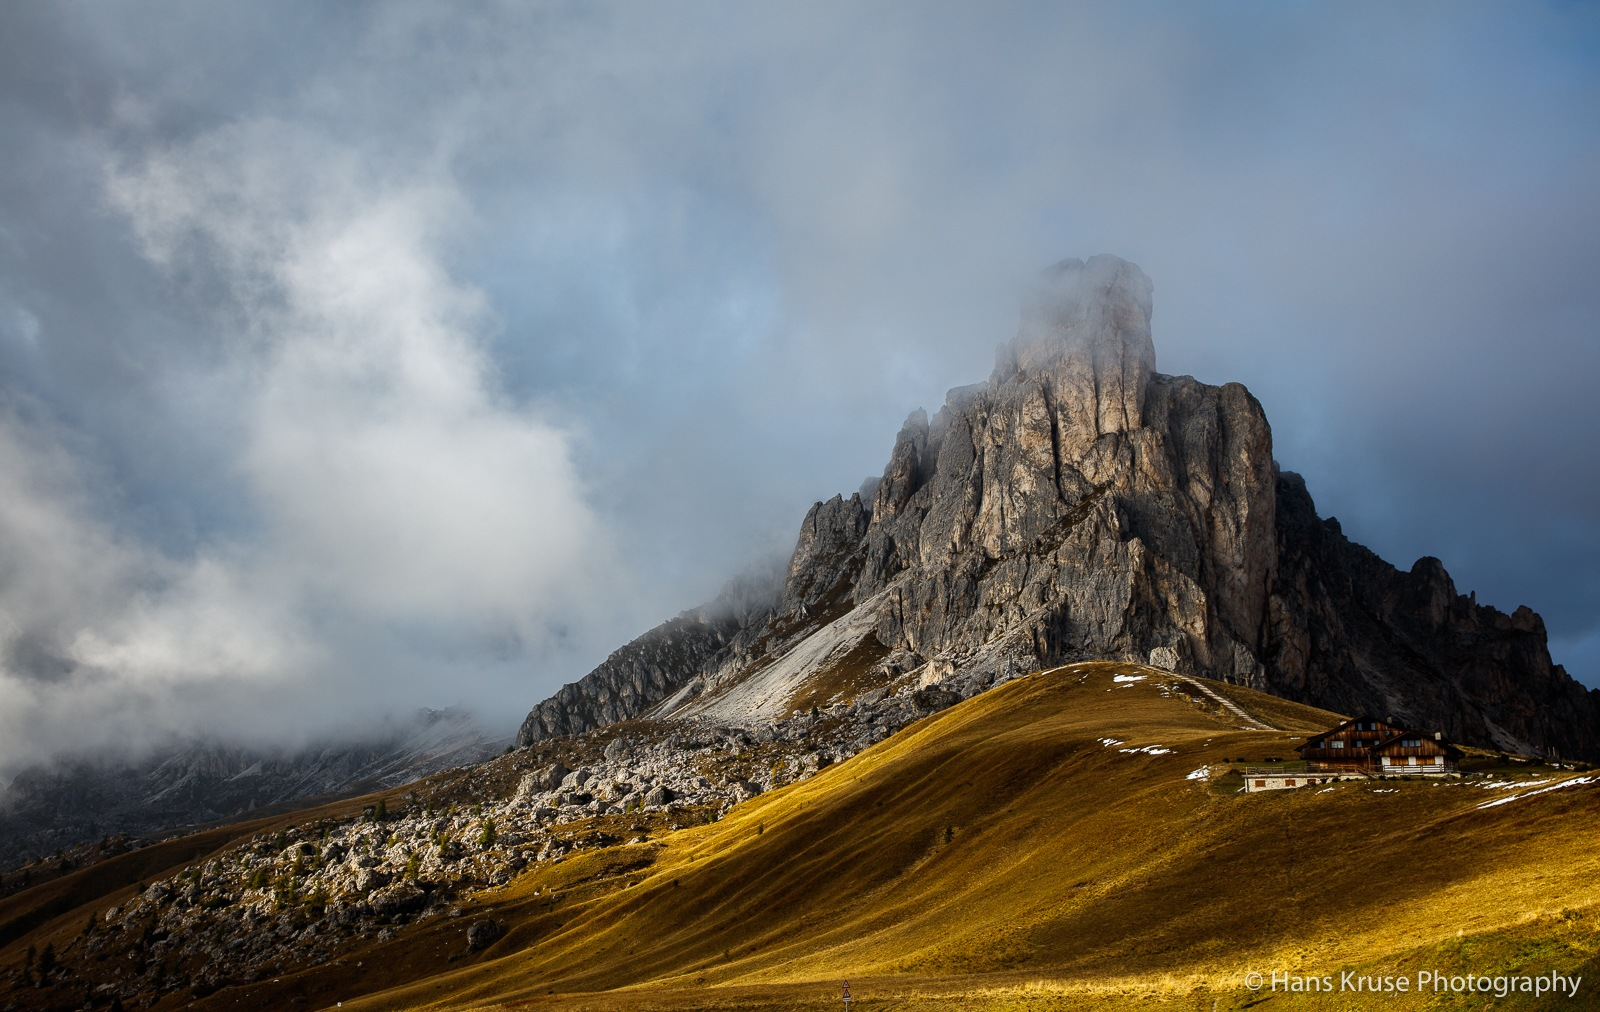 Late afternoon at Passo Giau by Hans Kruse